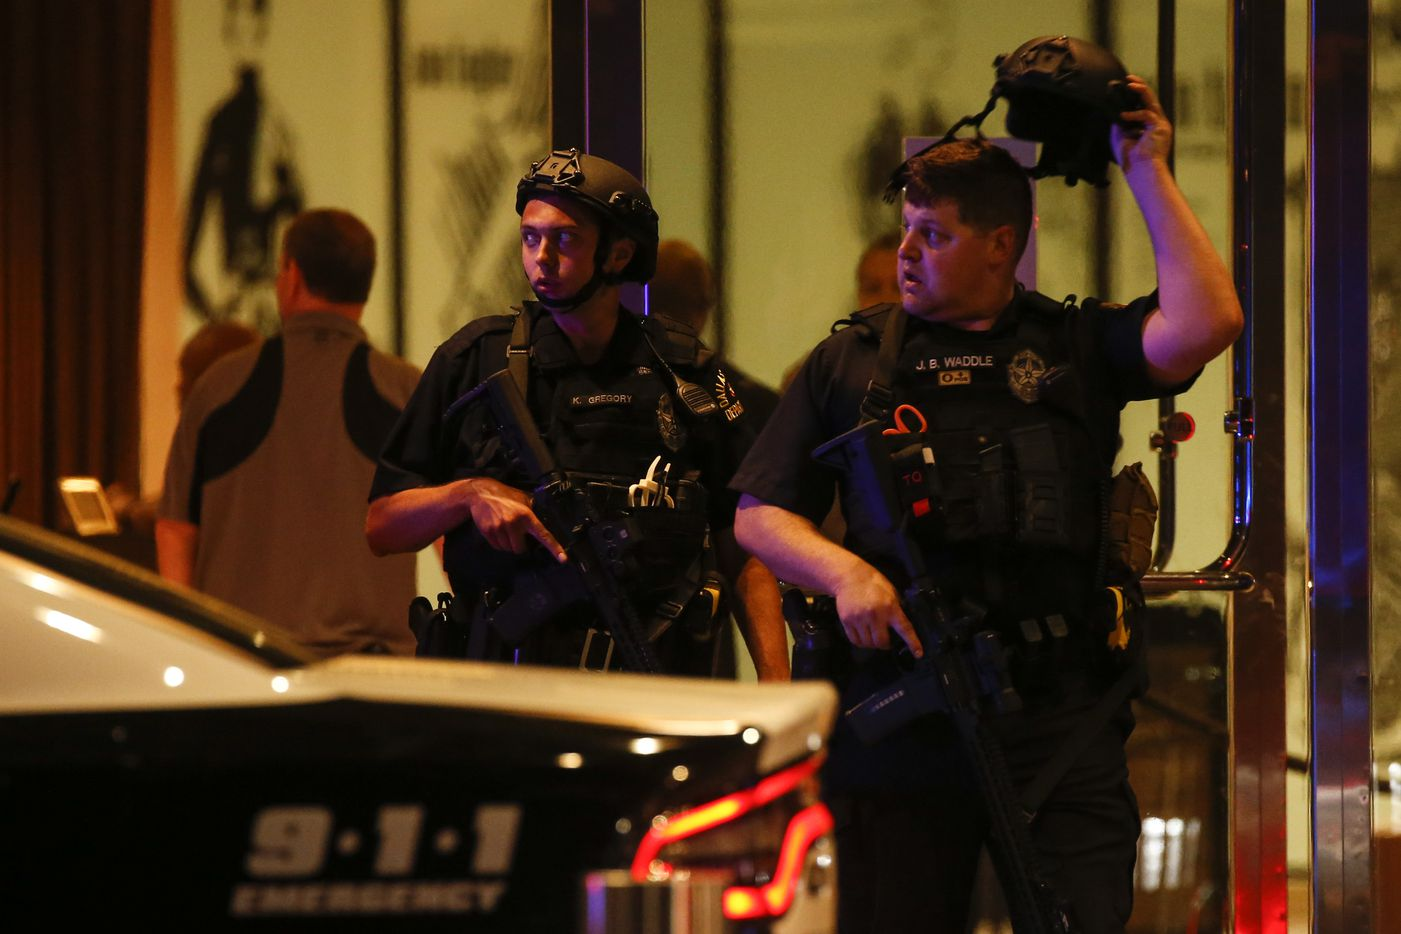 Dallas police return to their cars after responding to the Galleria Mall, where a shooting was reported Tuesday, June 16, 2020 in Dallas.